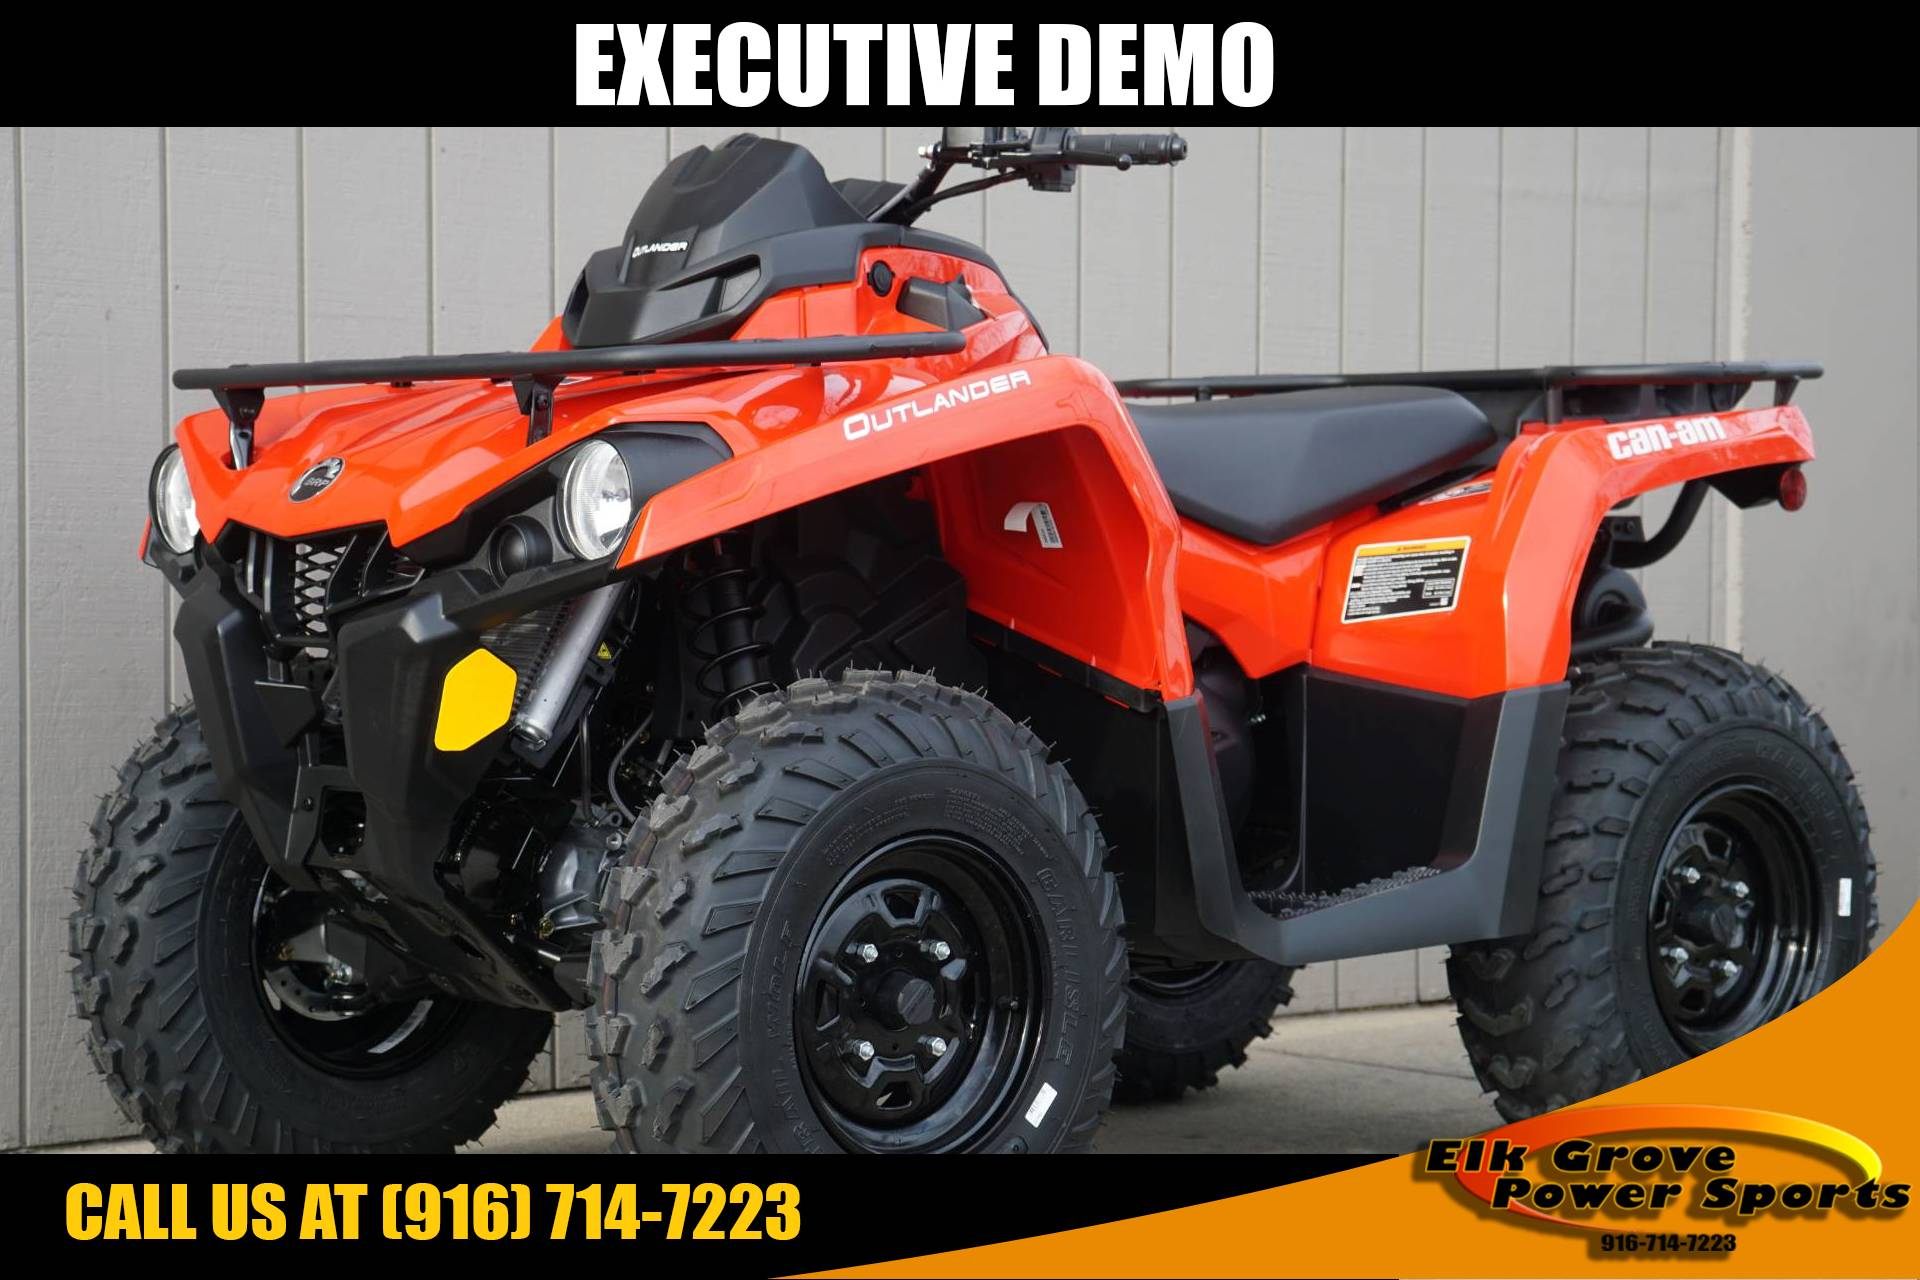 2019 Can-Am Outlander 450 for sale 34871